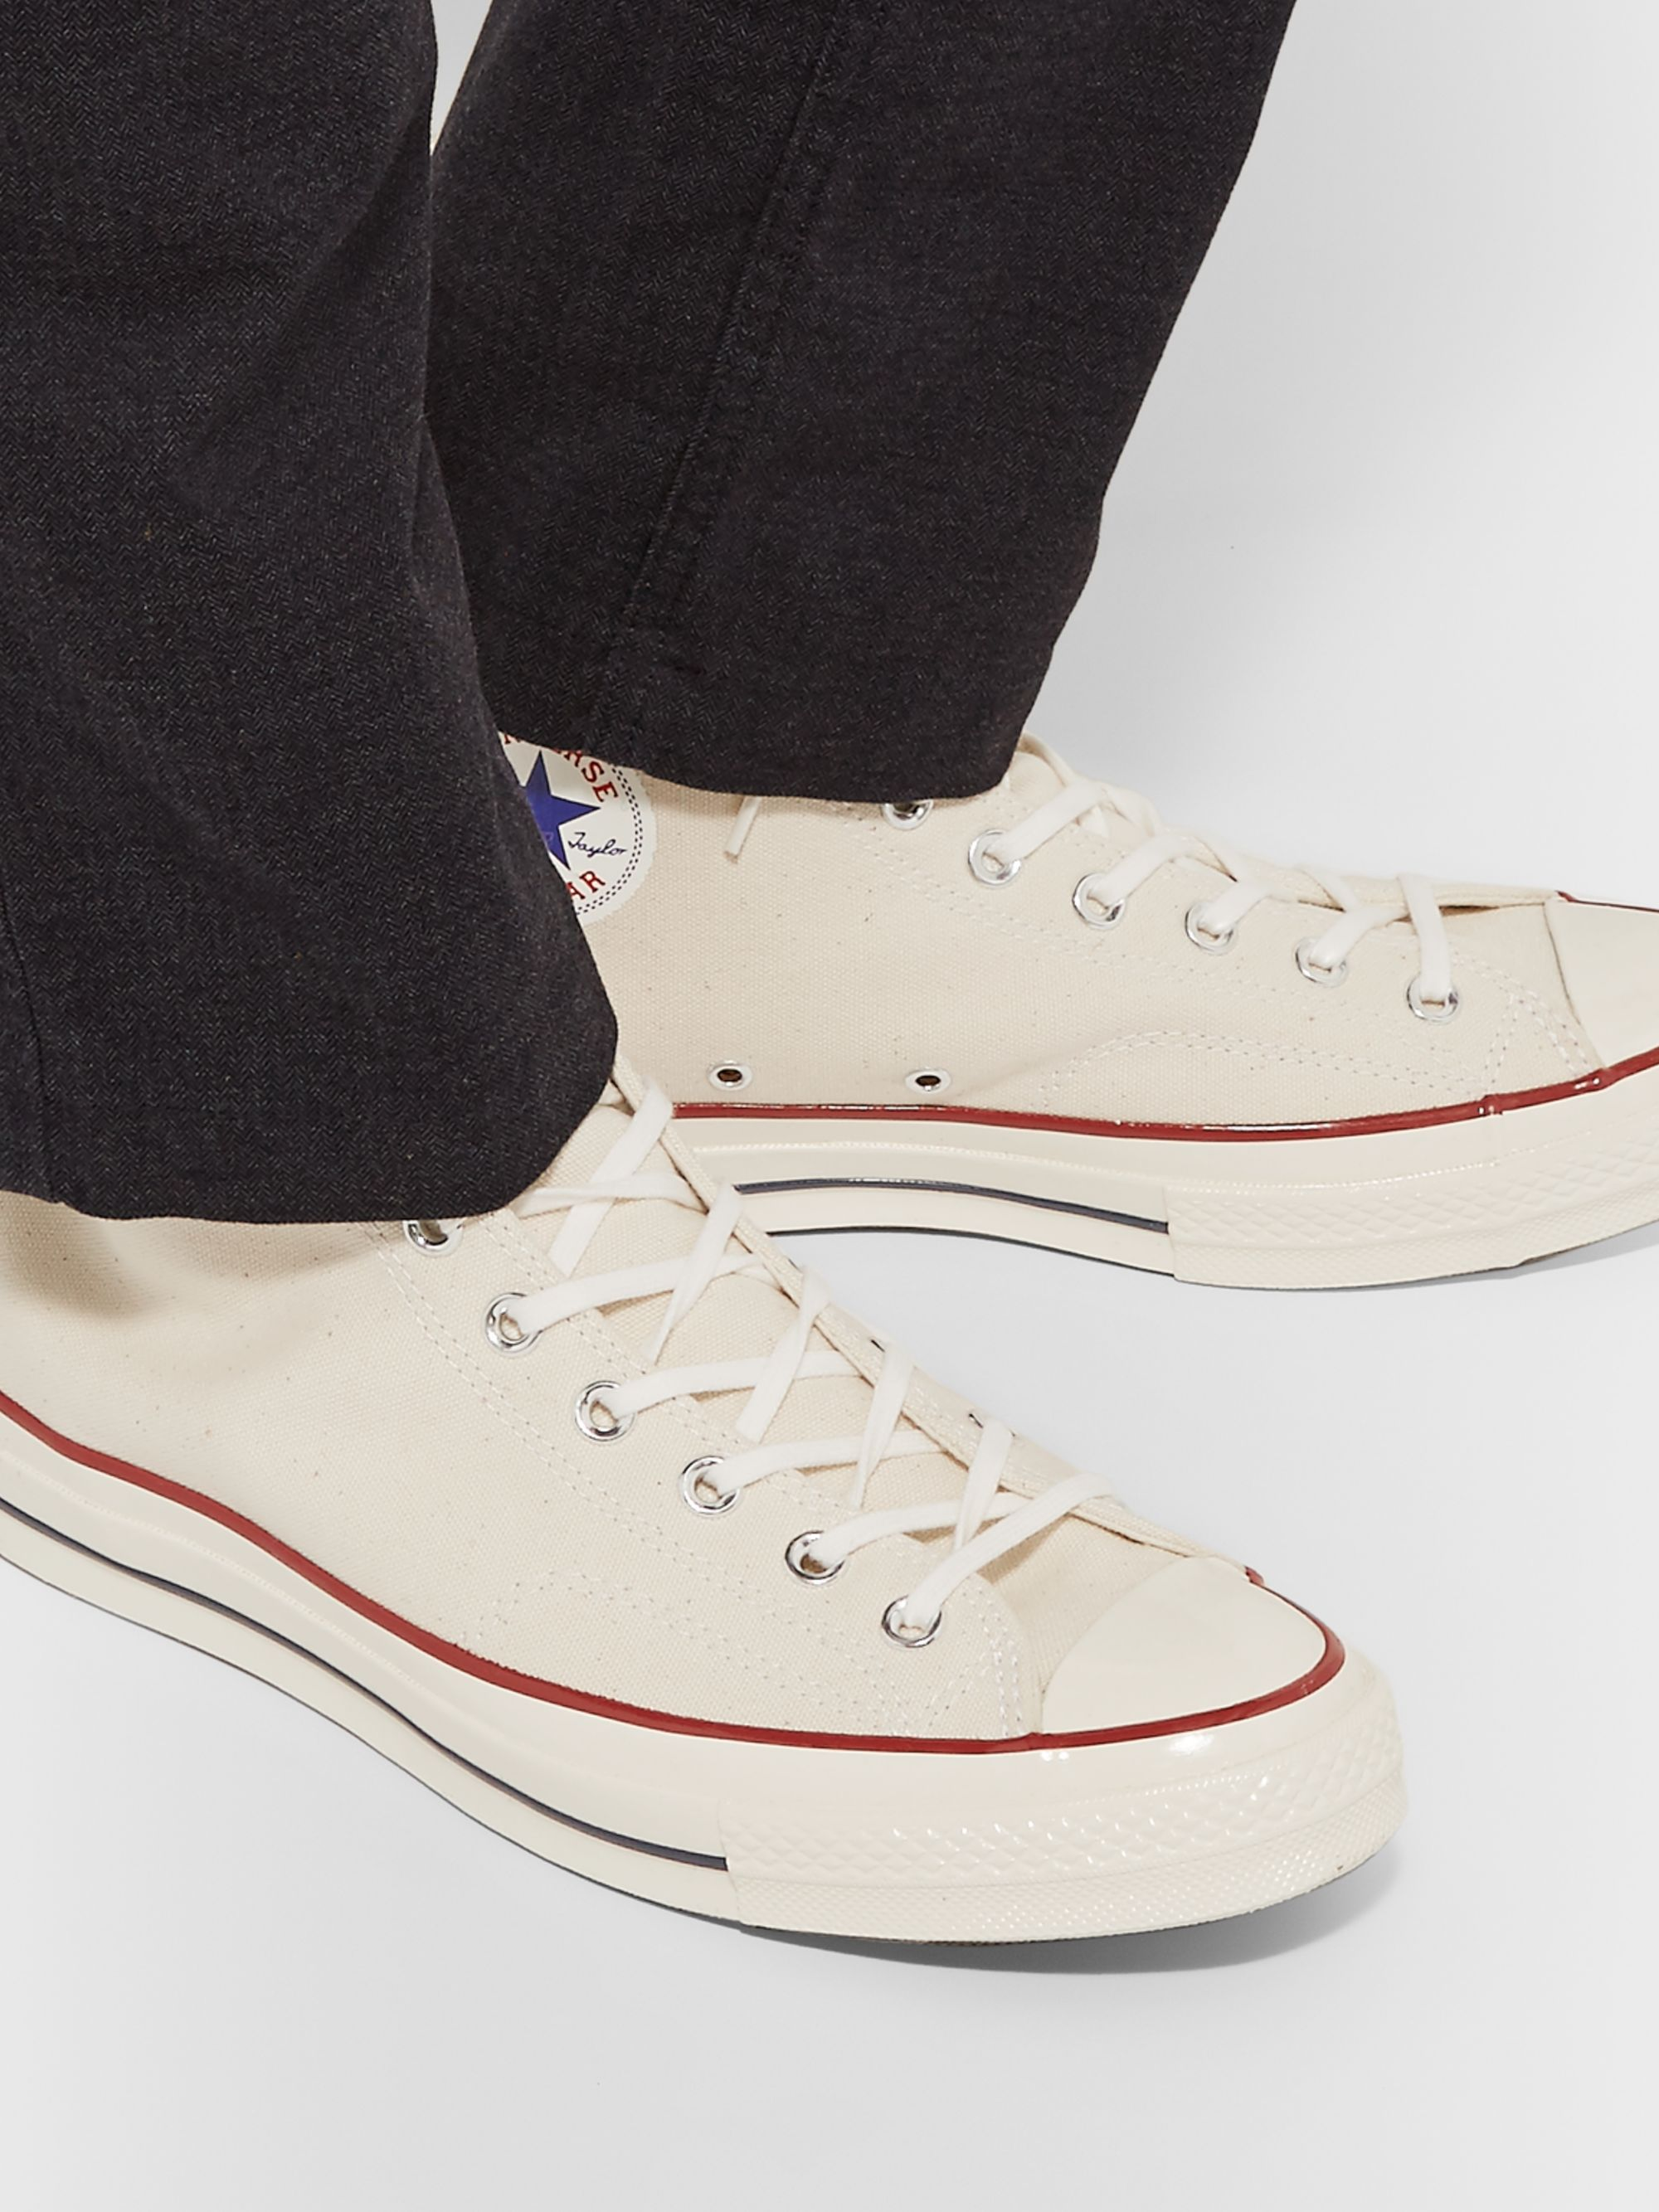 Converse Chuck Taylor All Star 70s Hi Off White in 2020